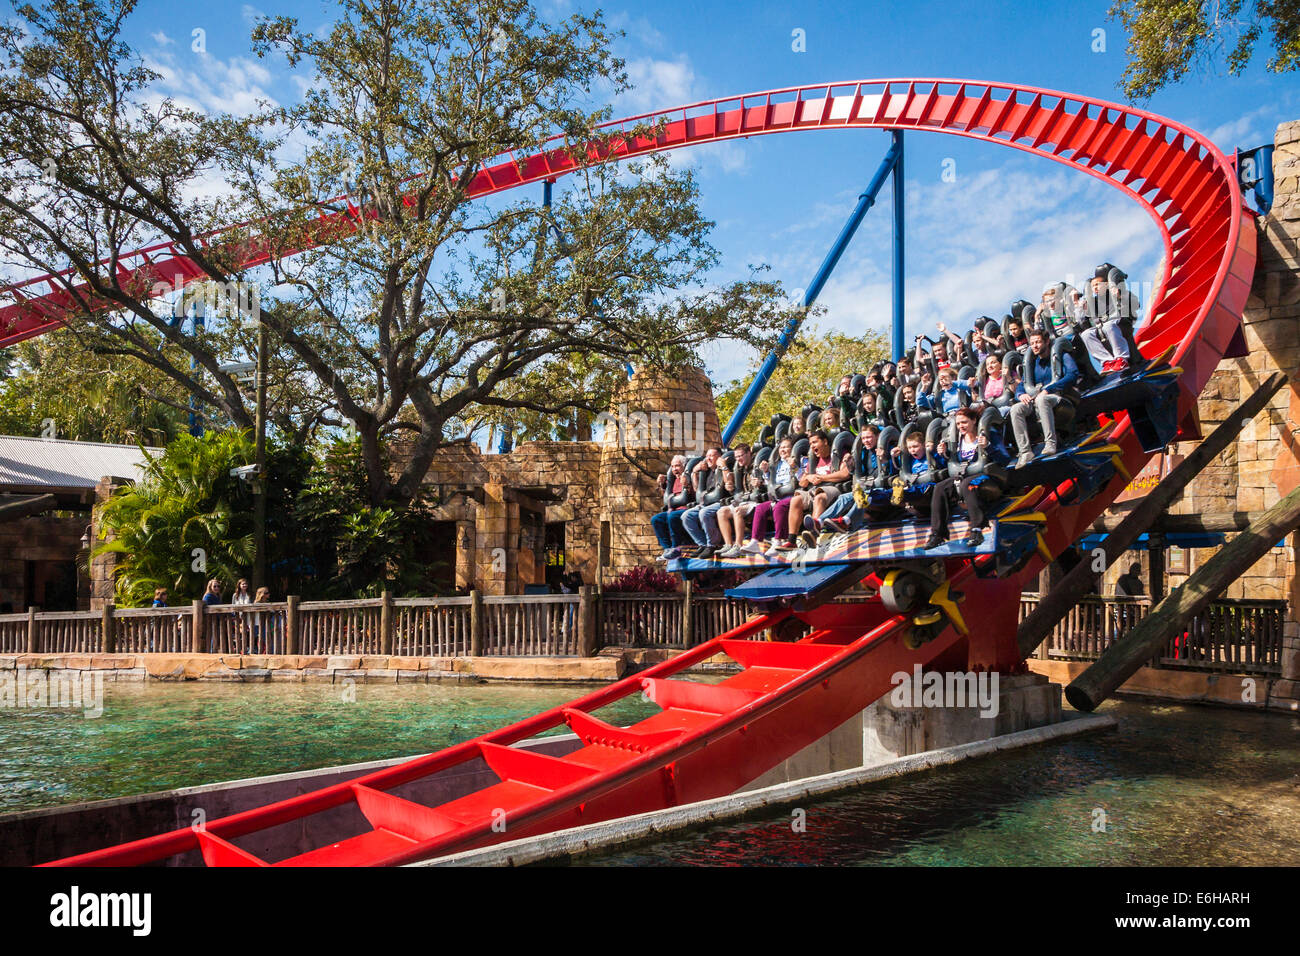 Park Guests Ride The Sheikra Roller Coaster At Busch Gardens Theme